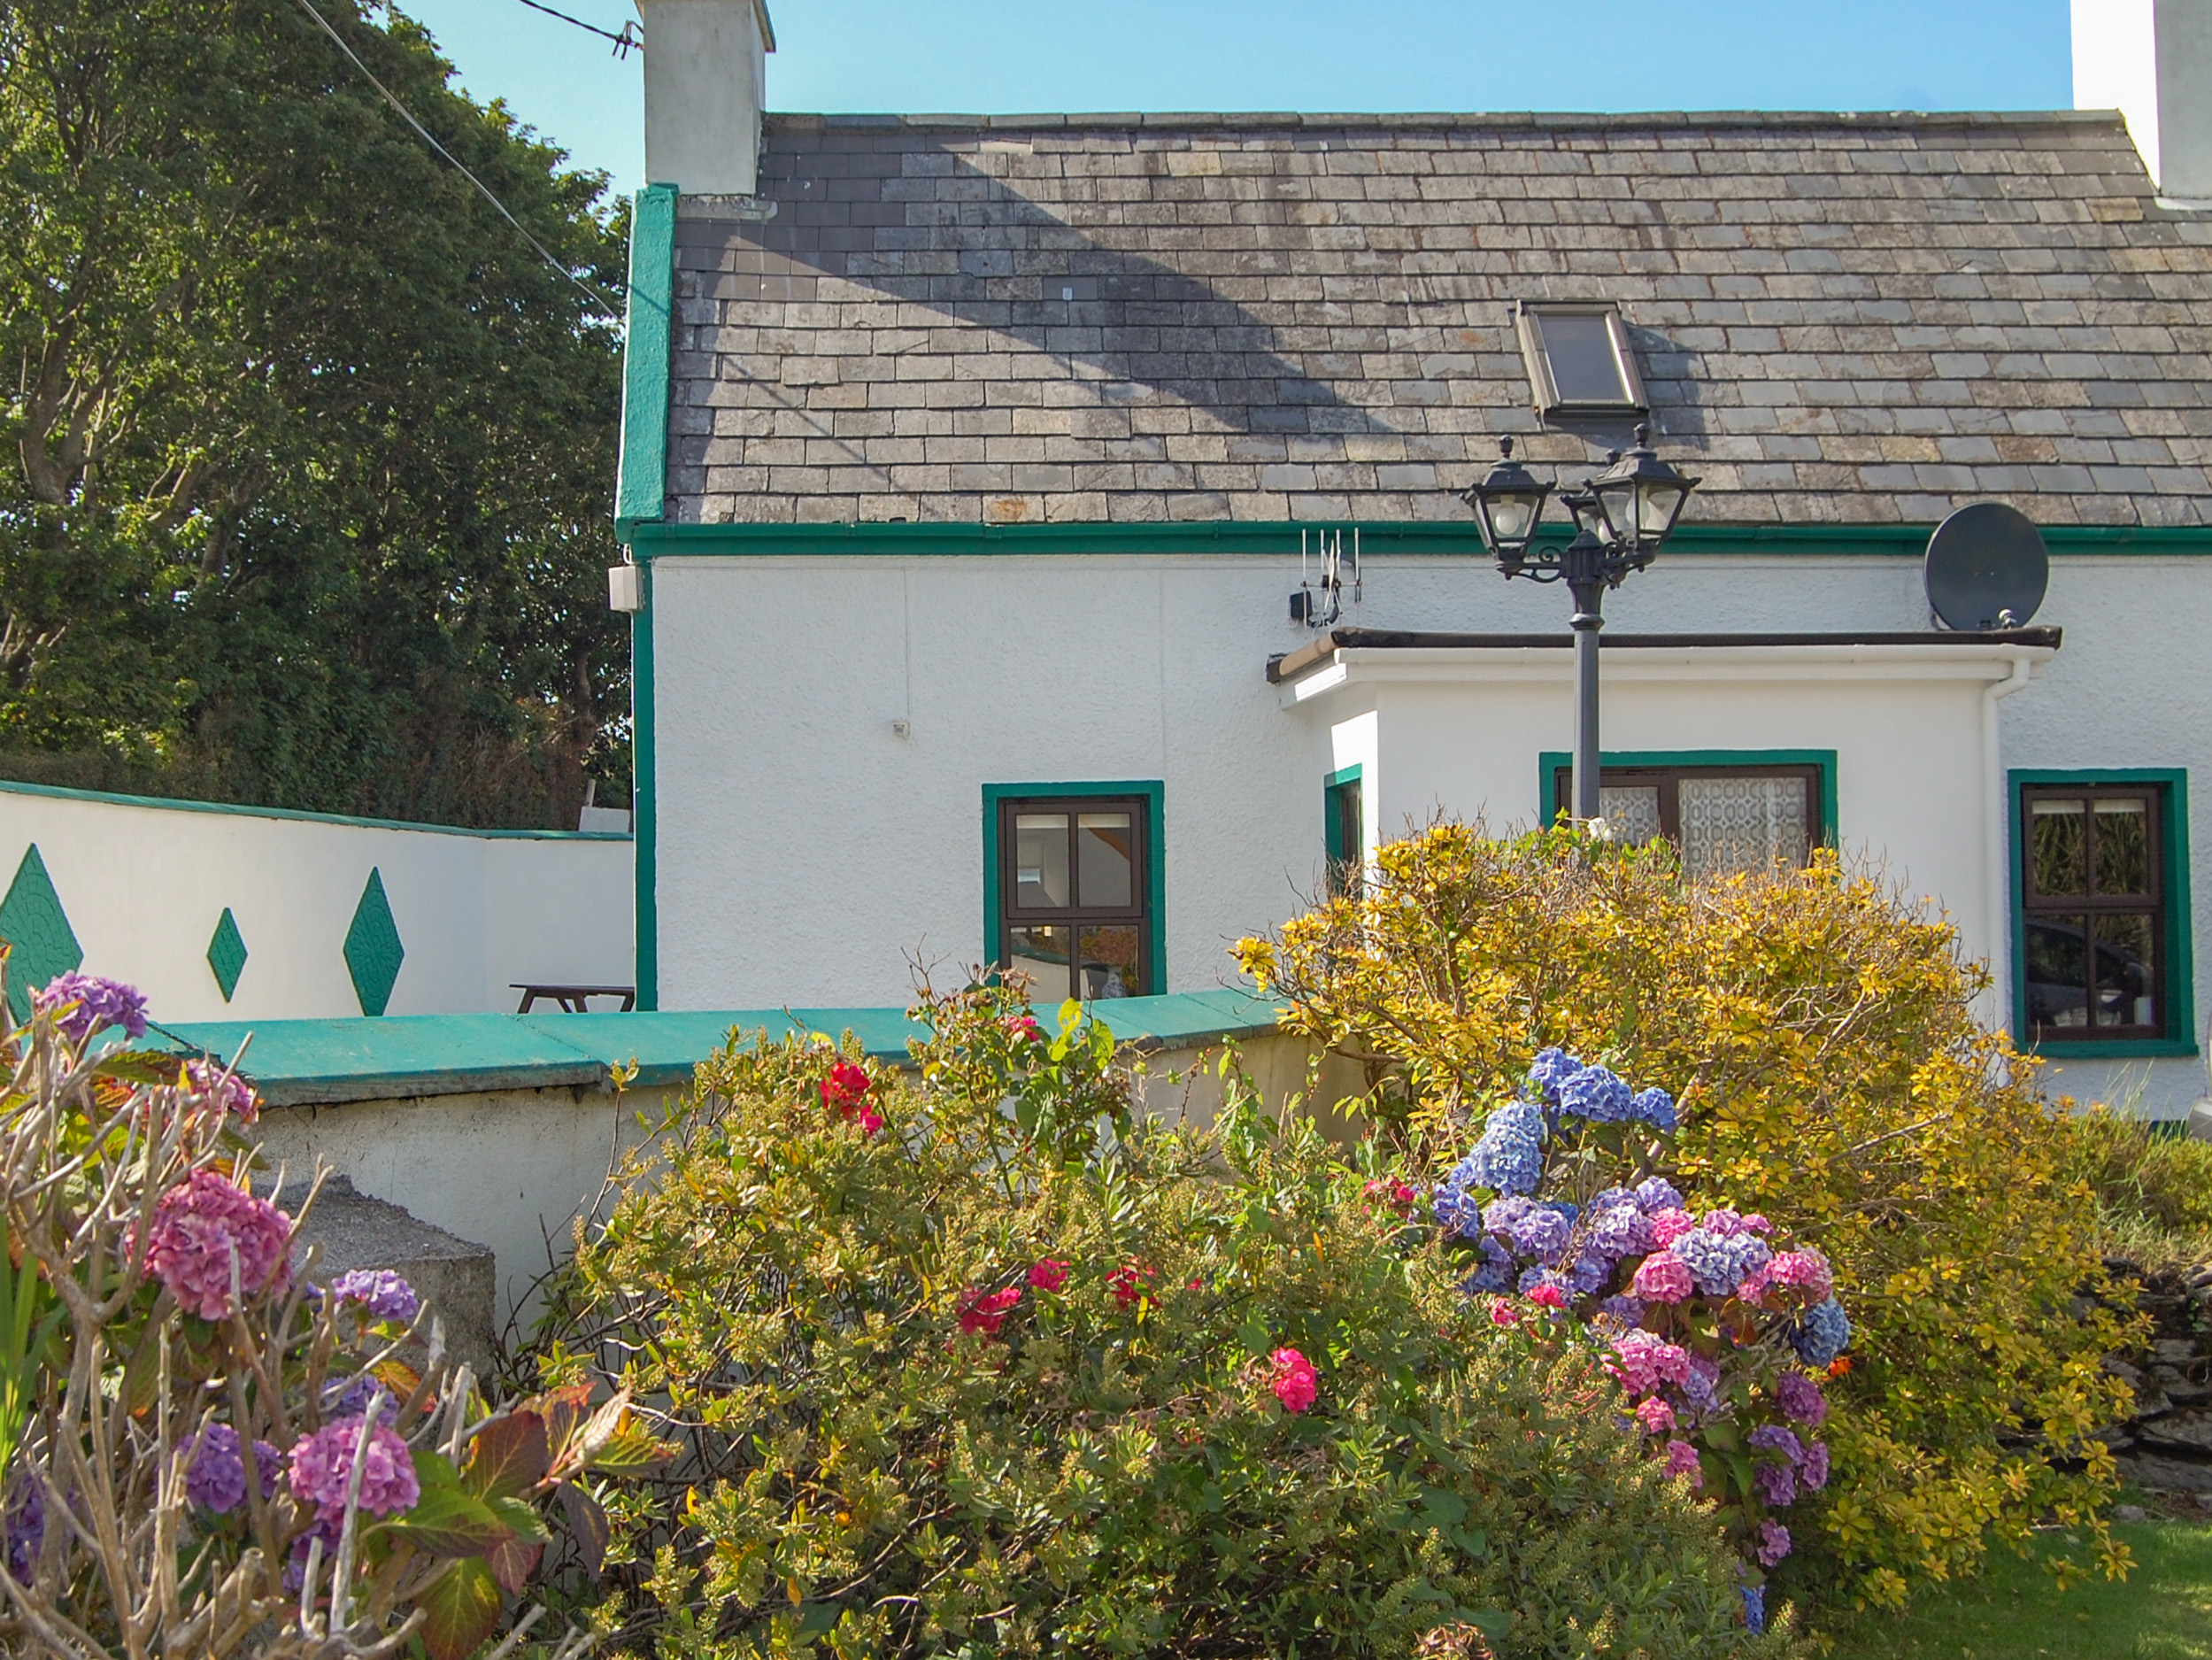 Nana's House, County Cork